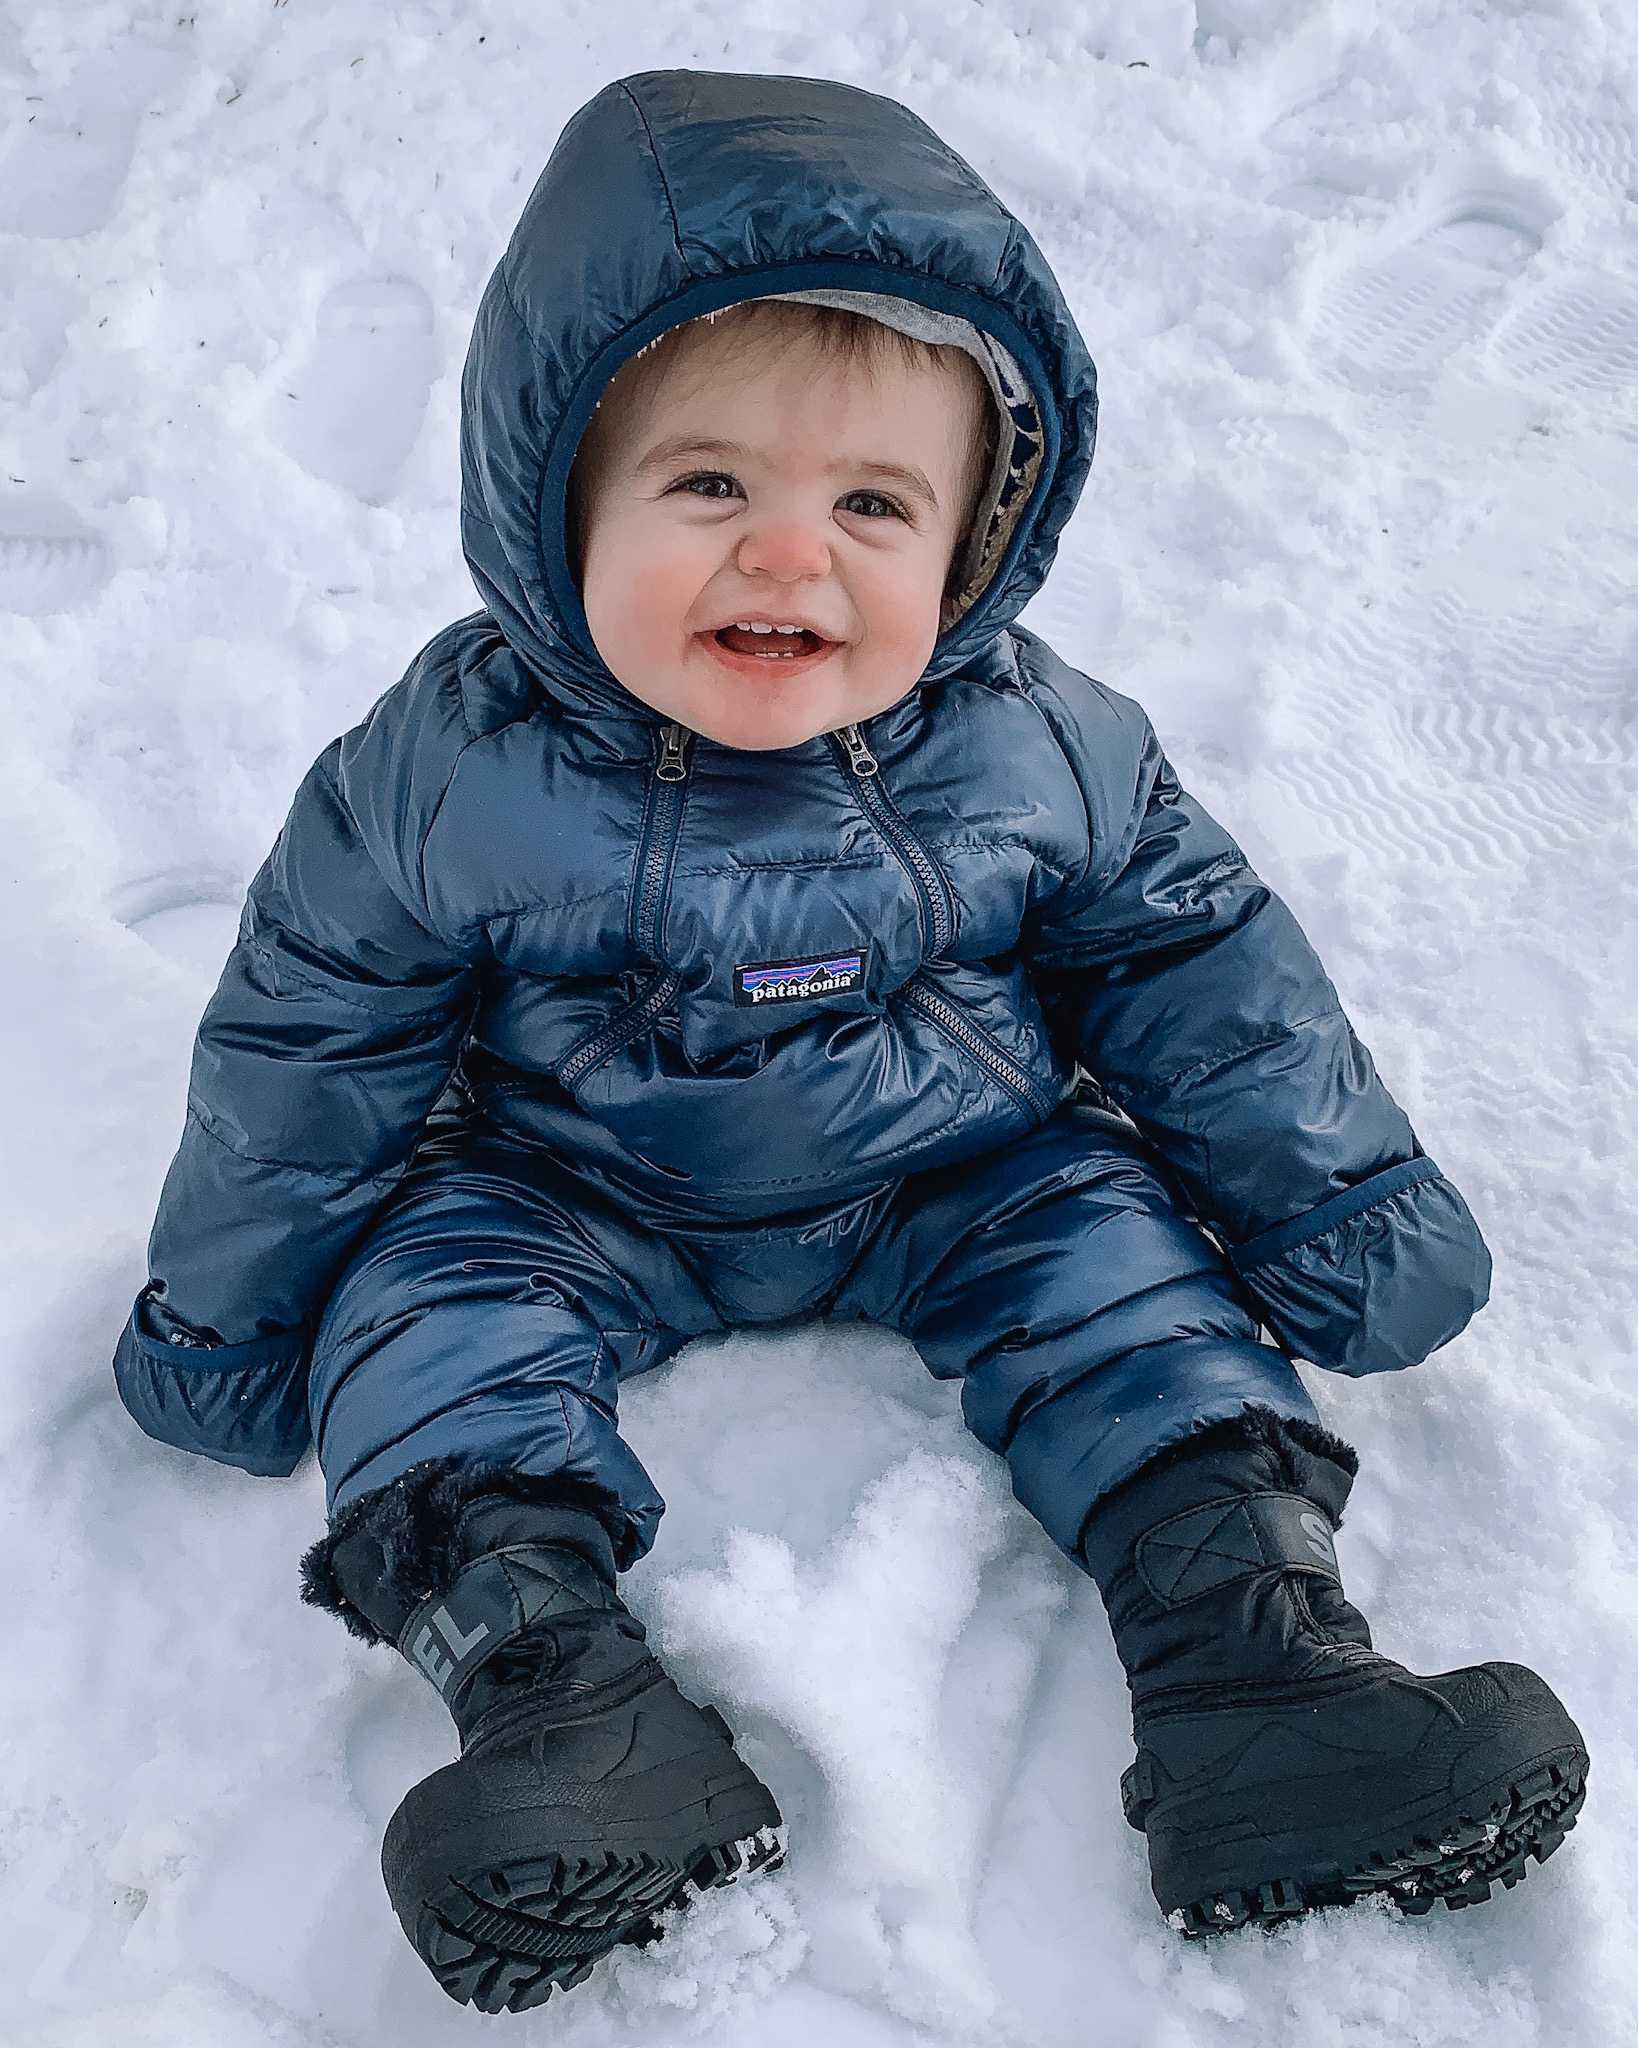 winter wear for family, gift guide, baby snowsuit, Patagonia, Sorel boots toddler, backcountry